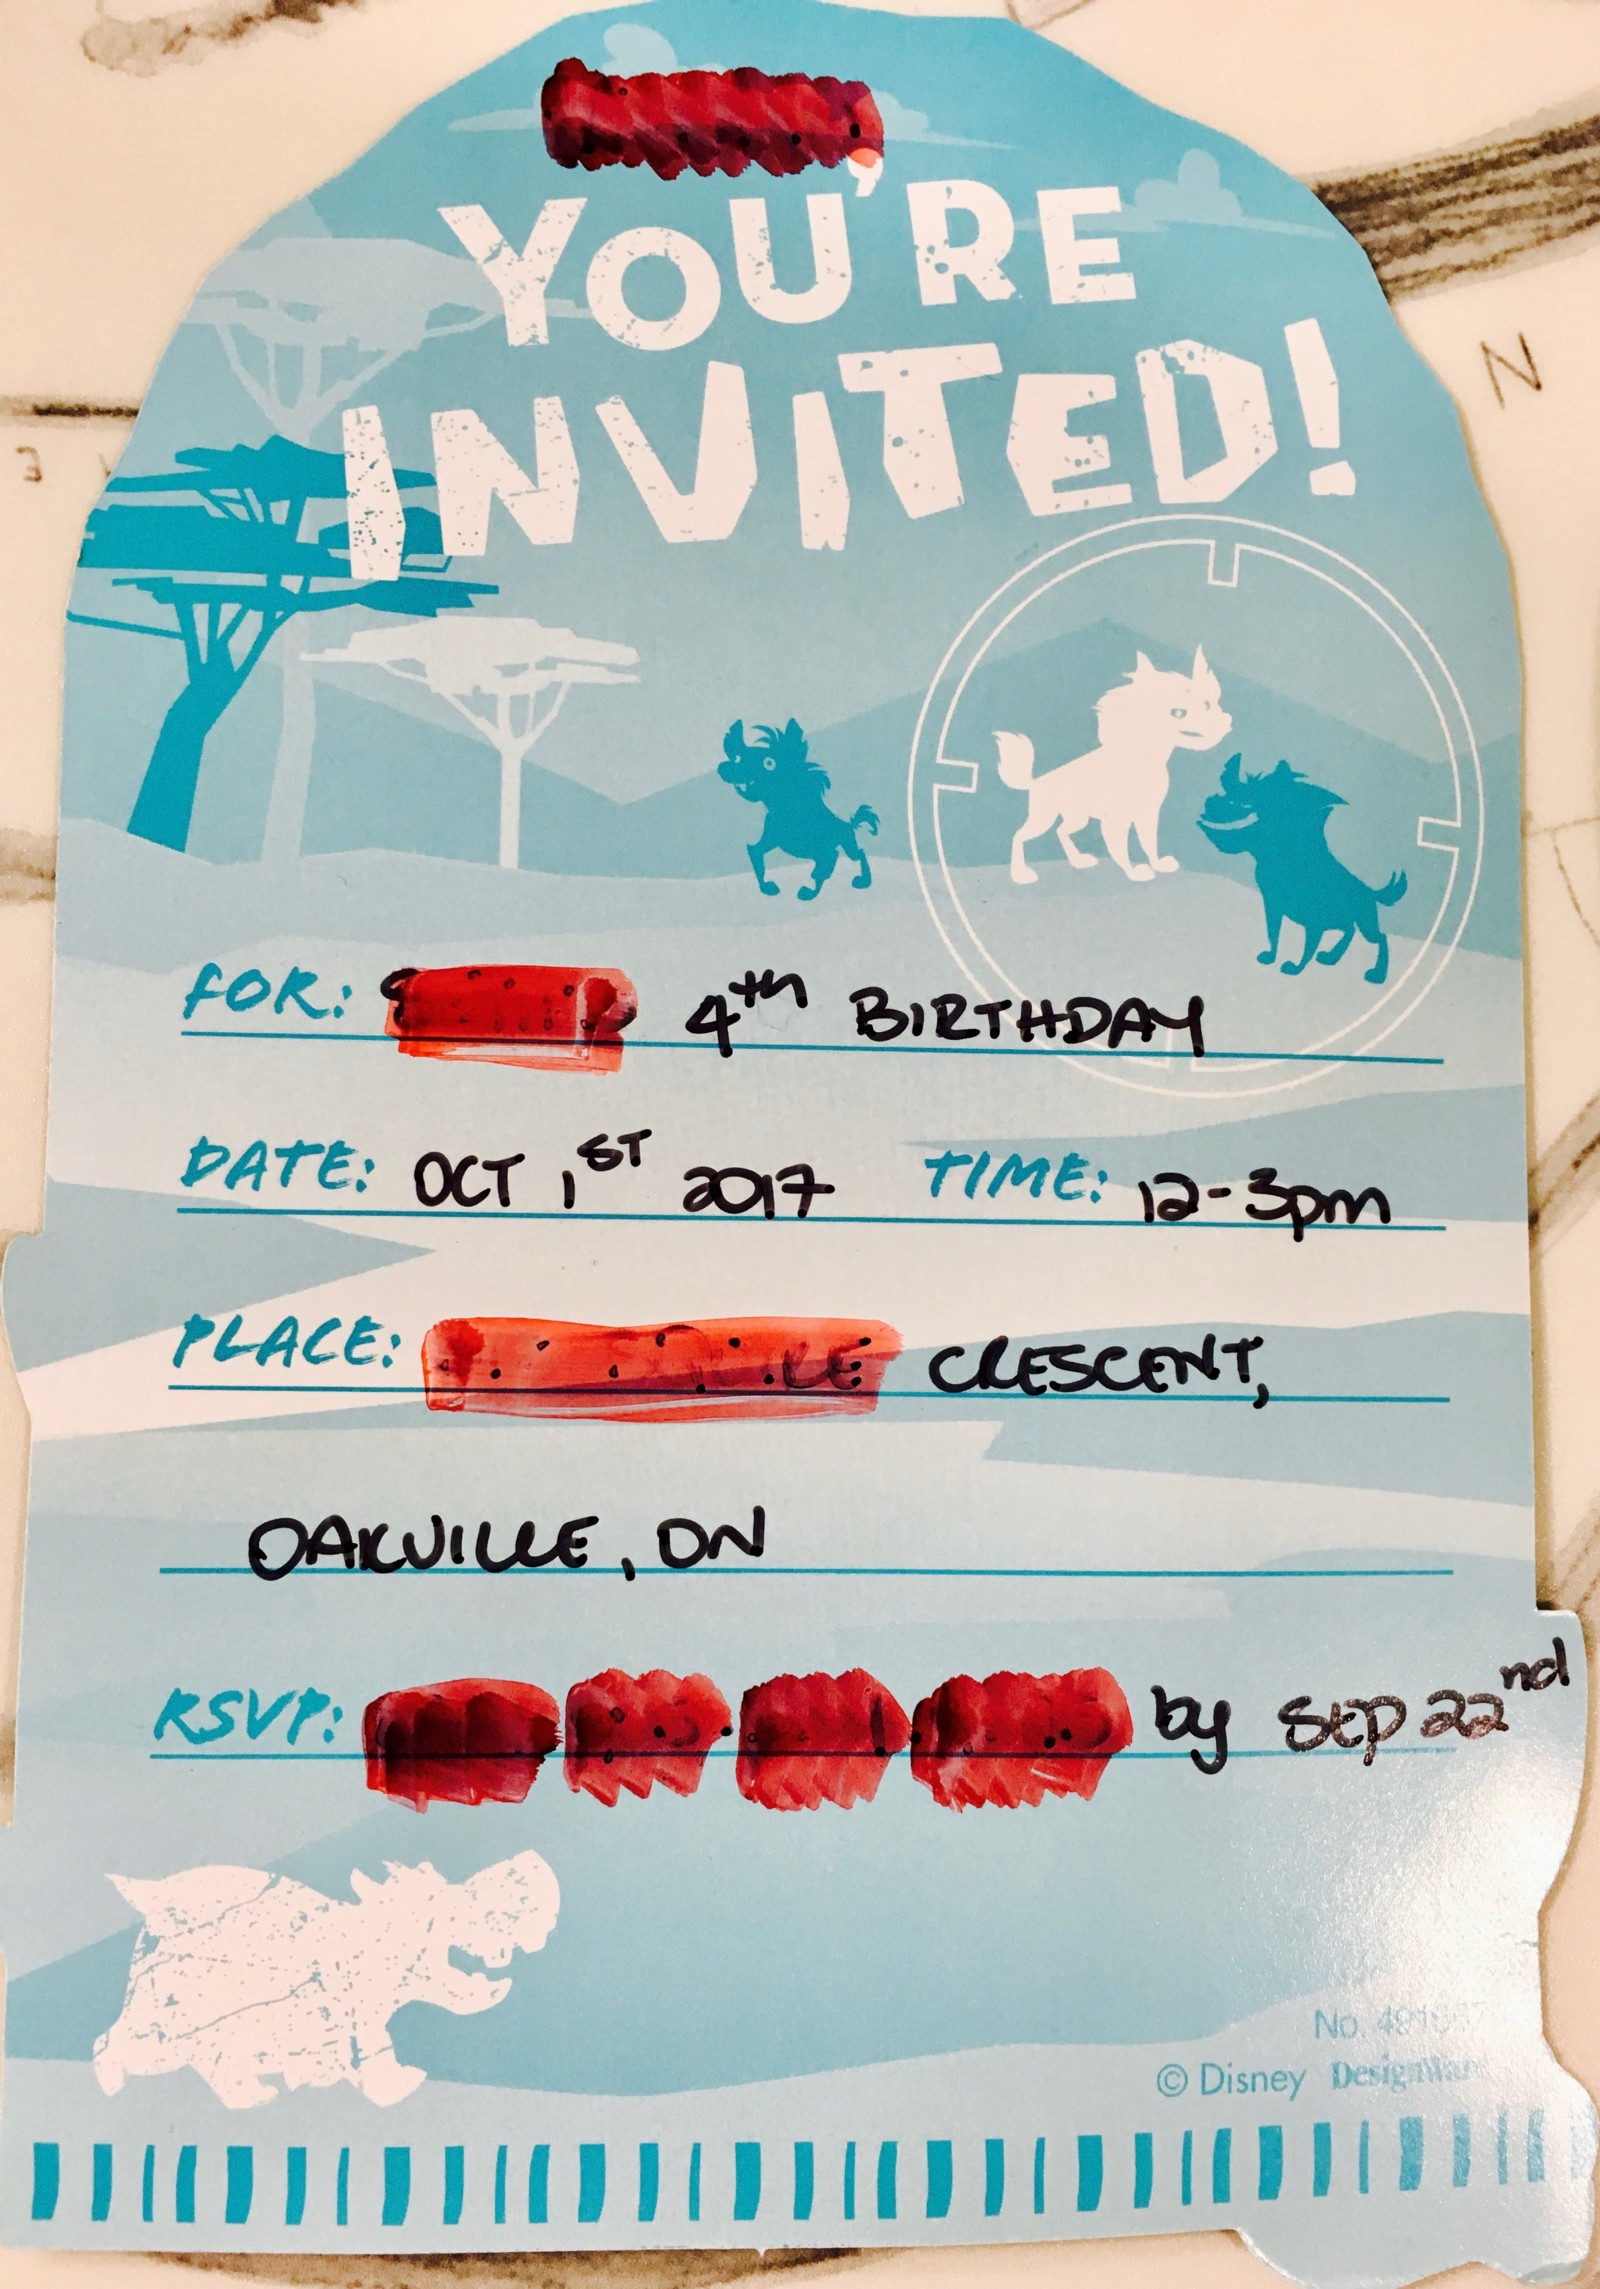 I Was Very Excited To Receive This Invitation As We Are Relatively New School And Birthday Parties A Great Way Connect With Other Parents